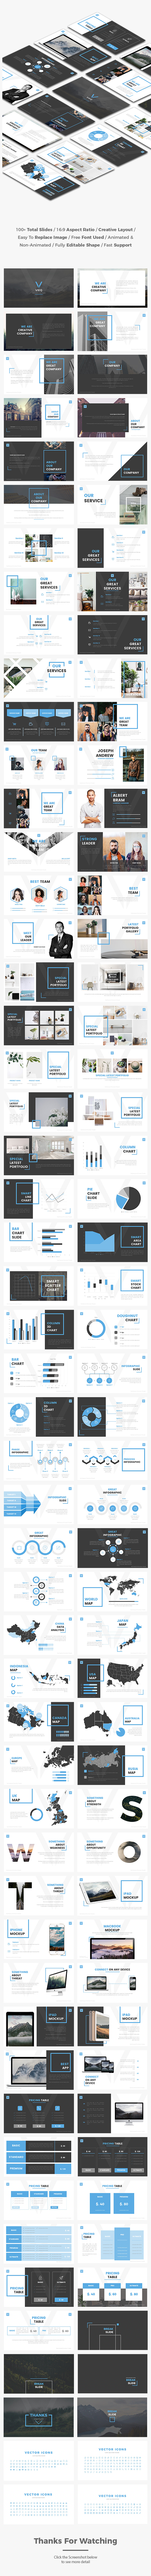 GraphicRiver Vieq Creative Google Slides Template 20956031